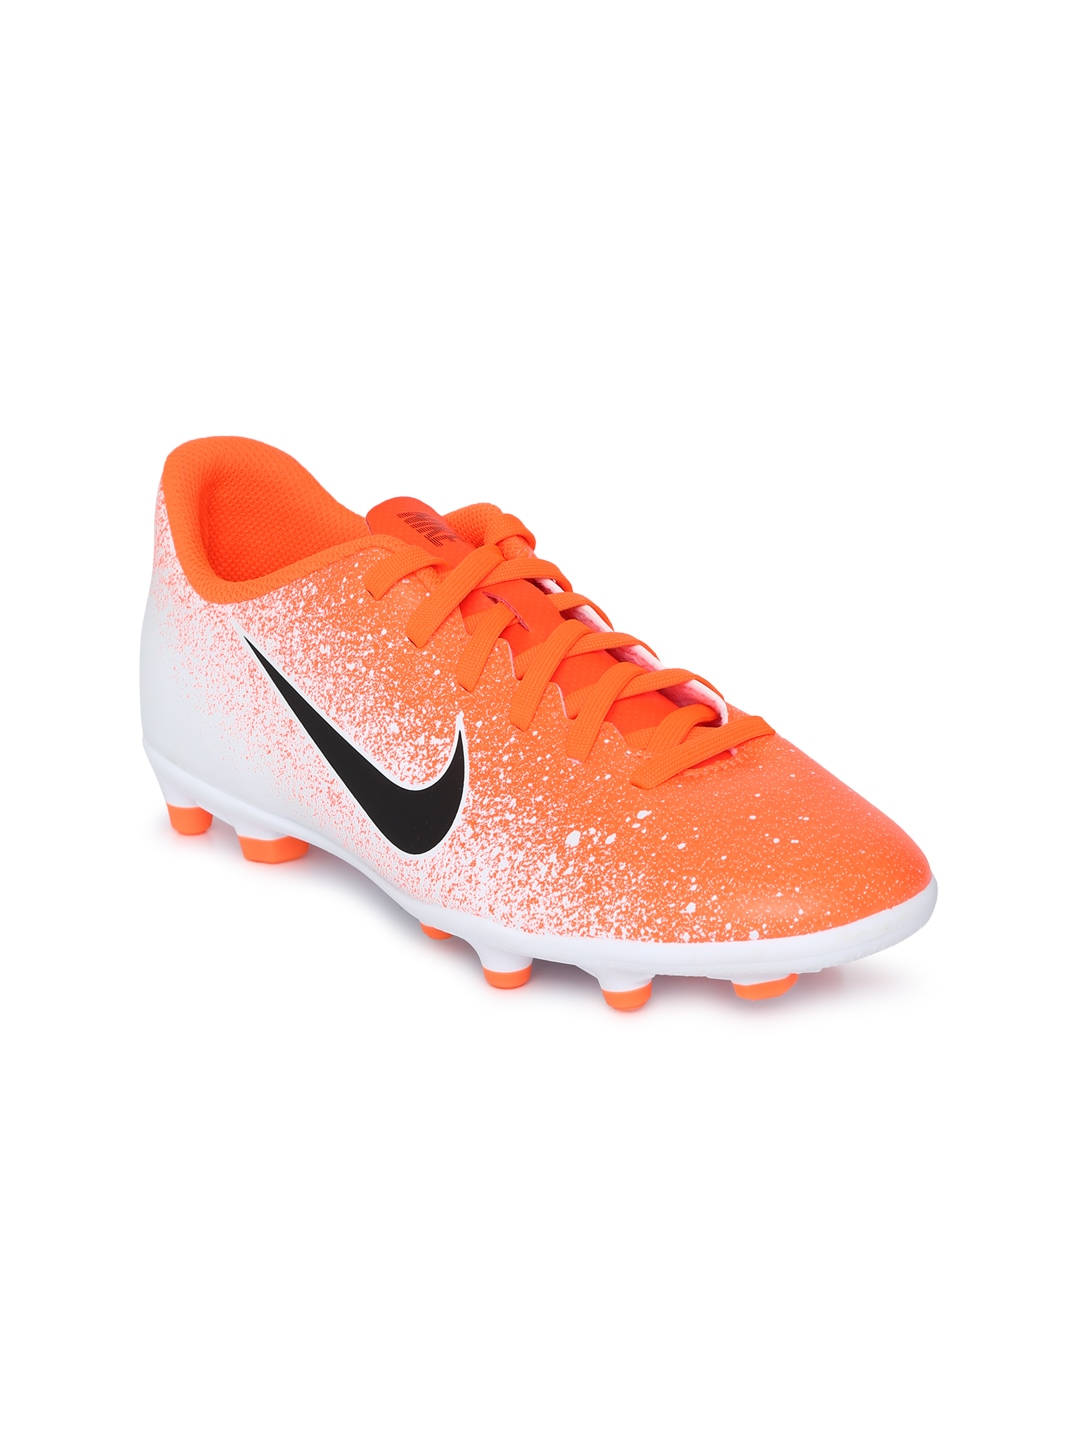 44579c4aa77e Boy s Nike Shoes - Buy Nike Shoes for Boys Online in India